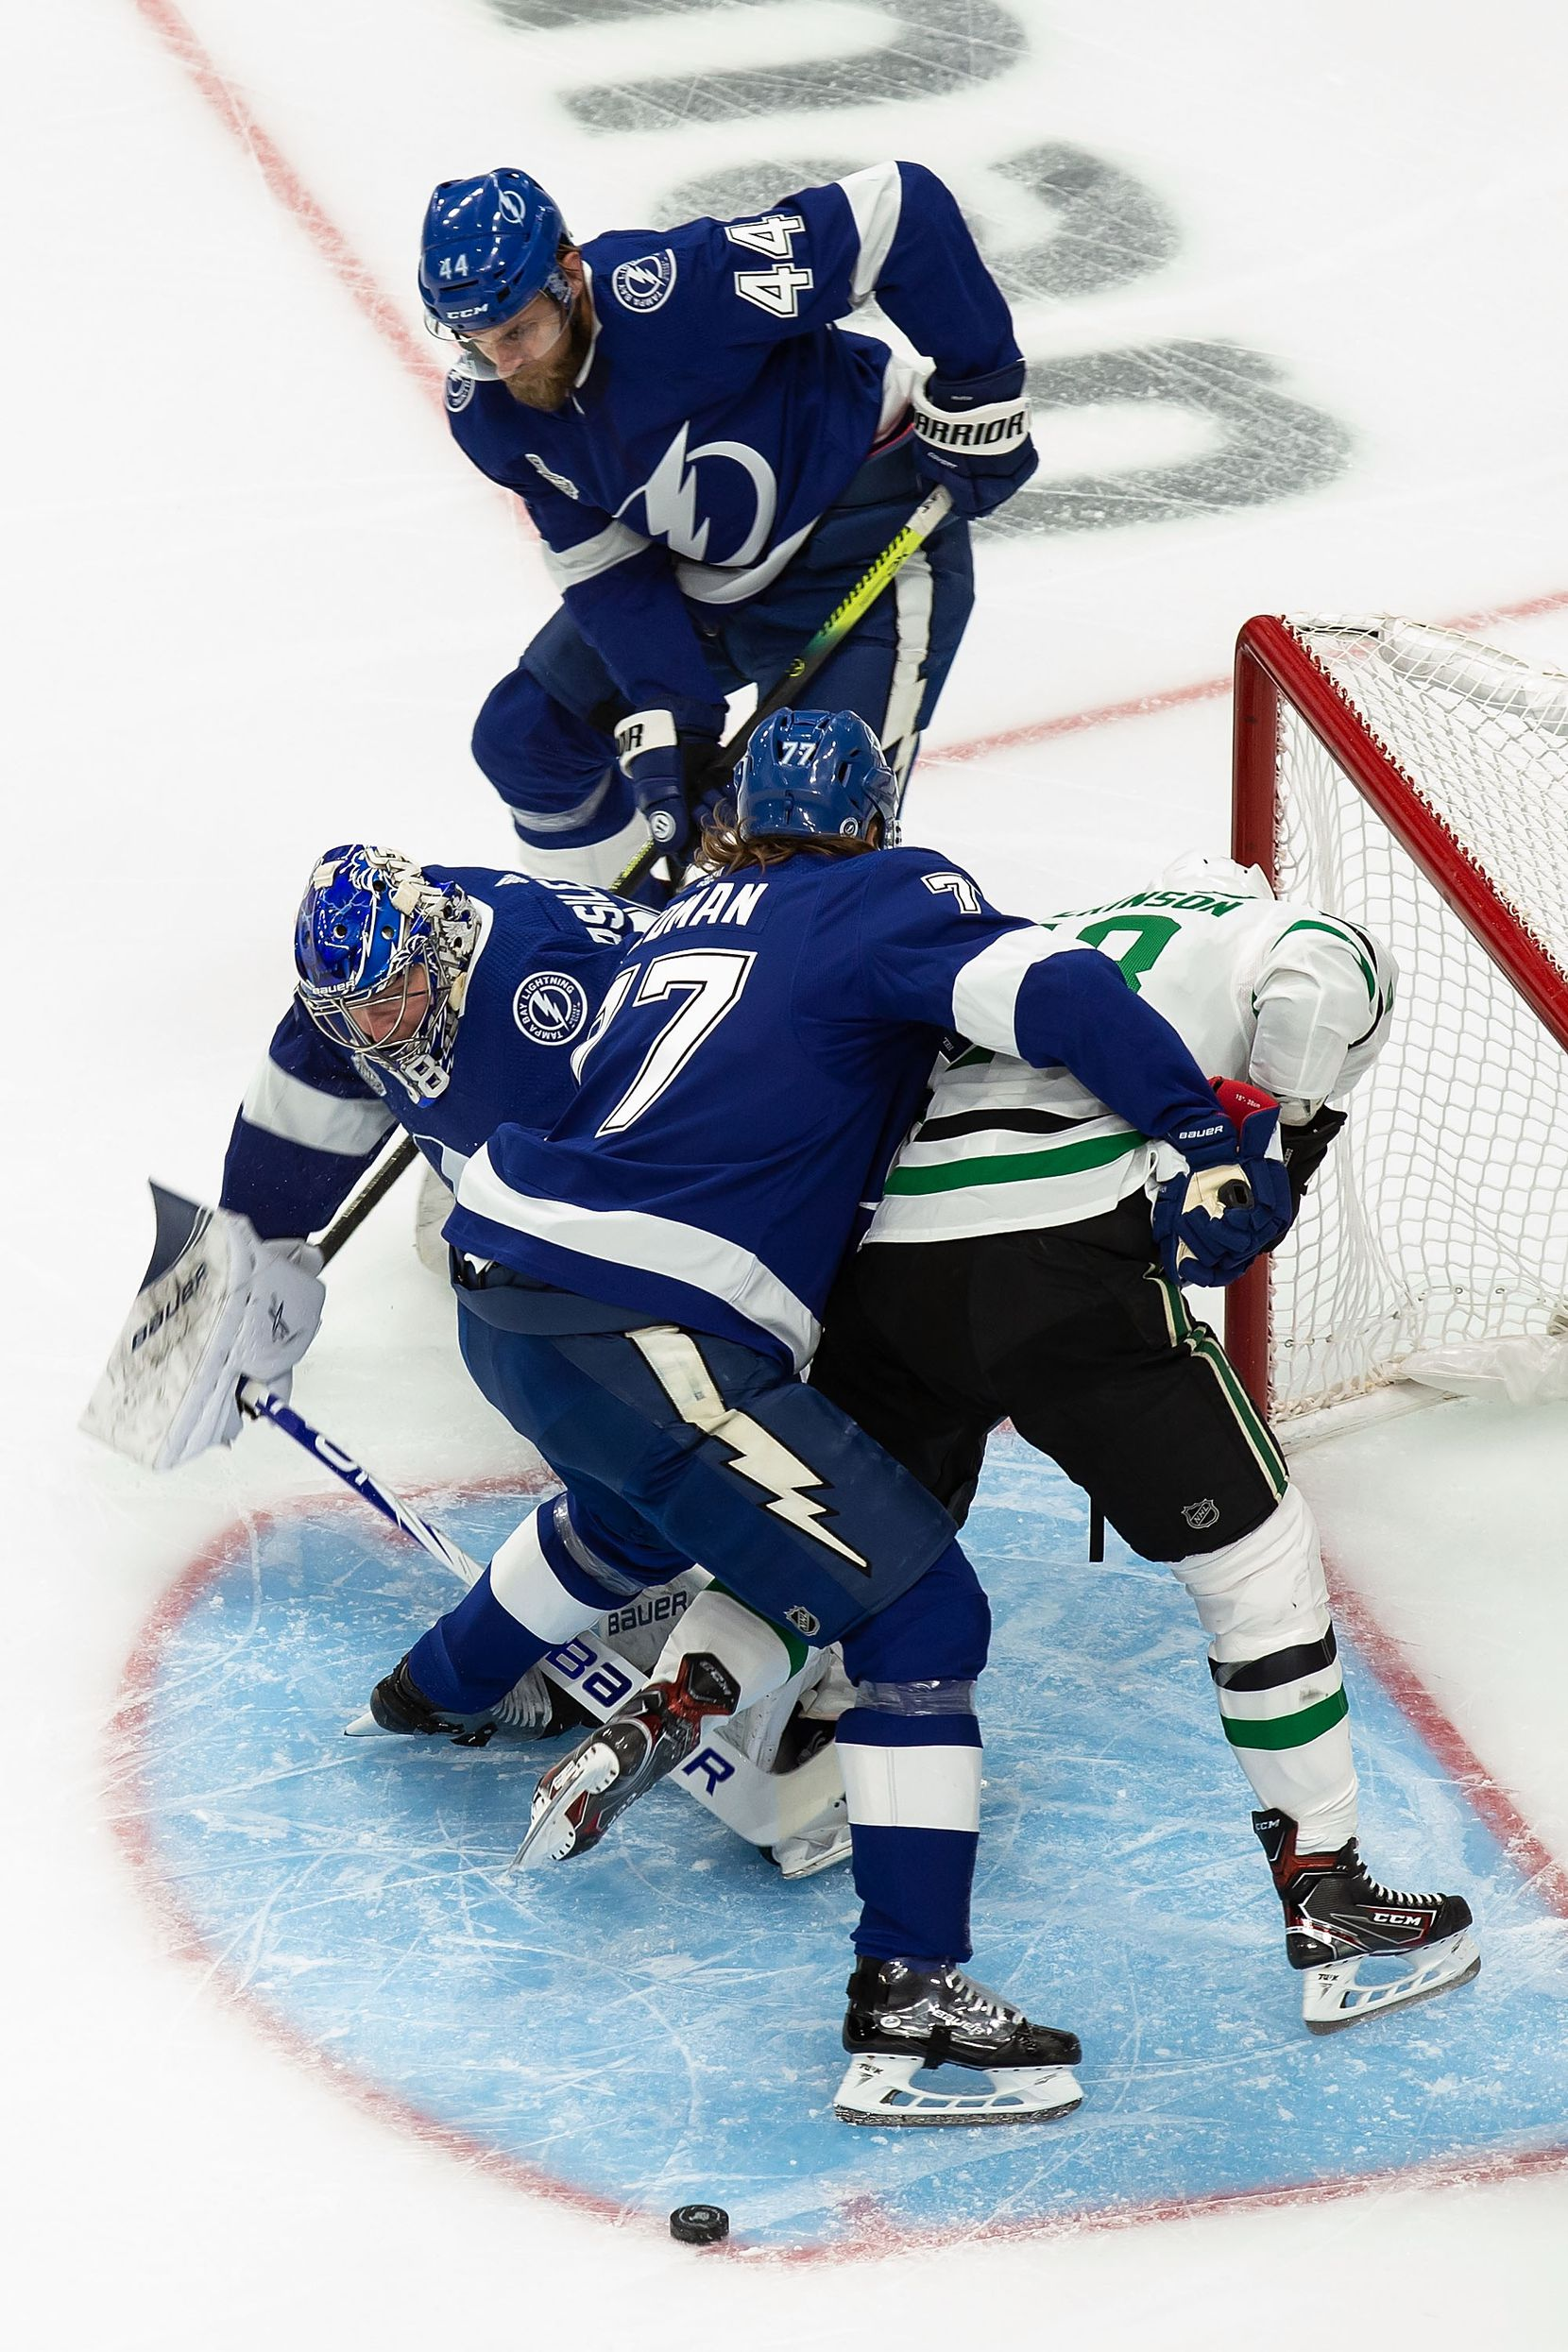 Jason Dickinson (18) of the Dallas Stars can't get past goaltender Andrei Vasilevskiy (88) of the Tampa Bay Lightning during Game Two of the Stanley Cup Final at Rogers Place in Edmonton, Alberta, Canada on Monday, September 21, 2020. (Codie McLachlan/Special Contributor)